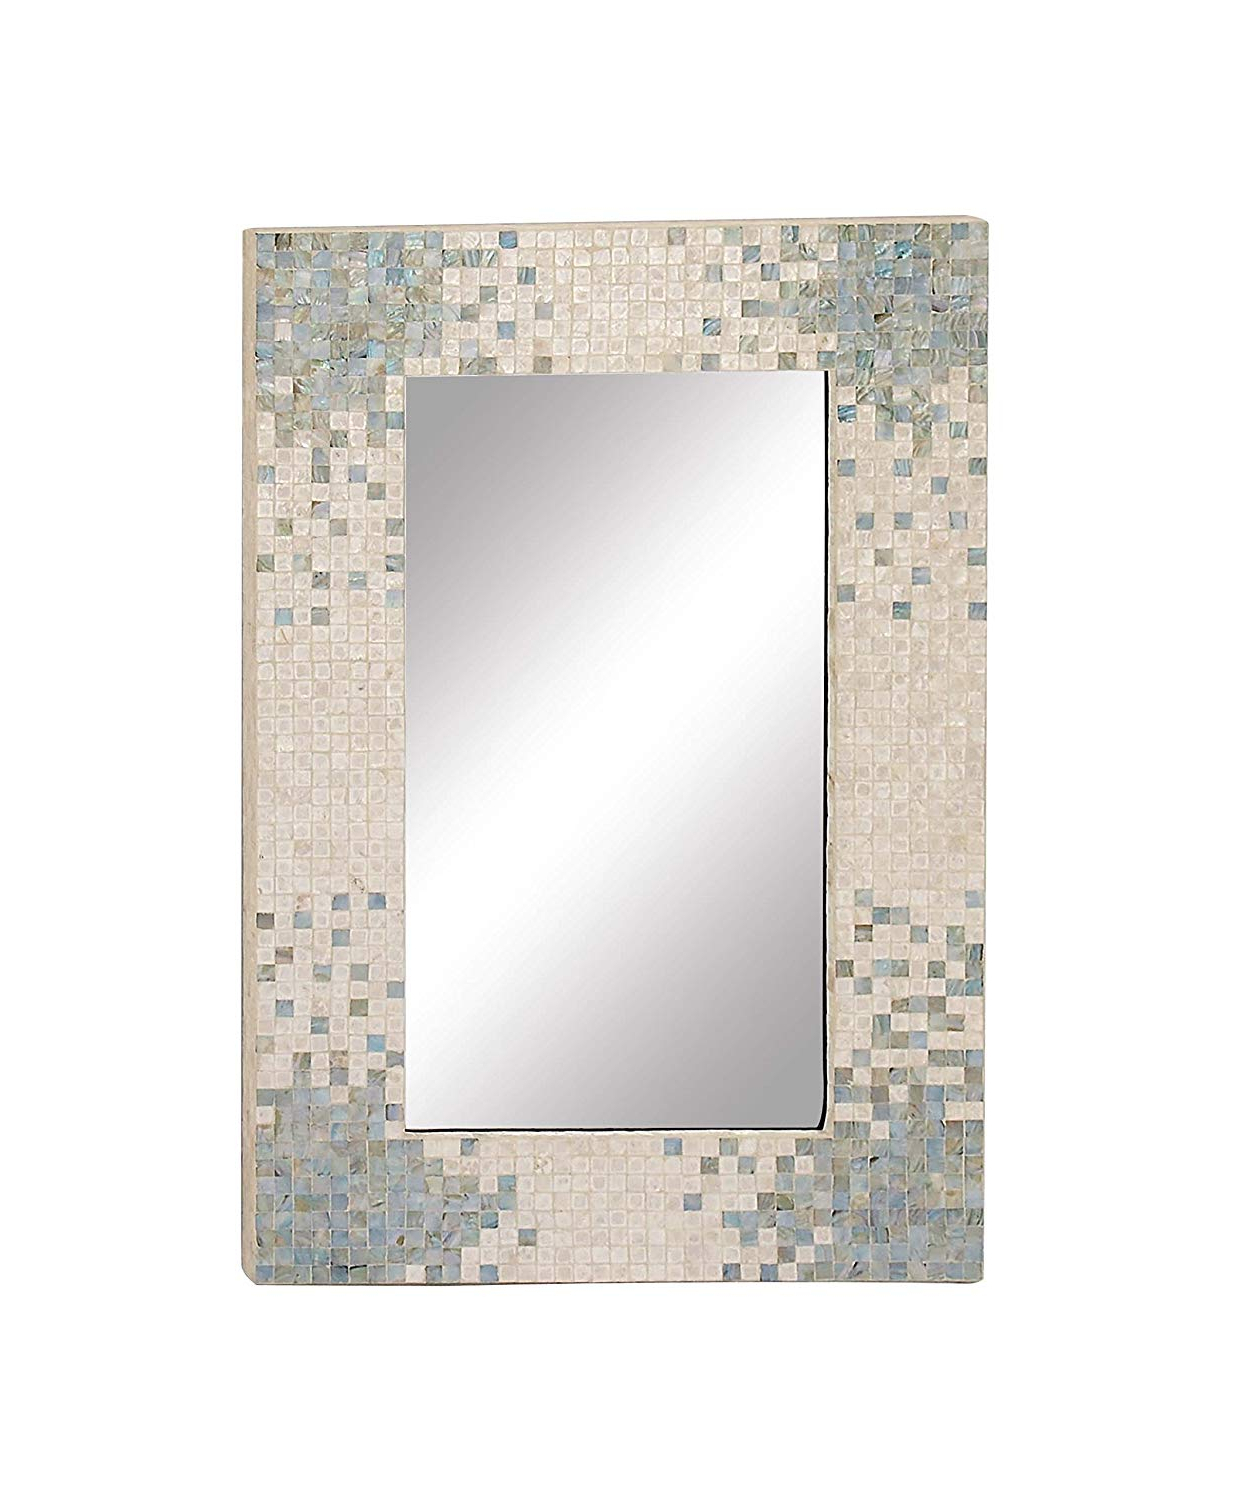 Well Known Amazon: Deco 79 84415 84415 Wall Mirror, Reflective/pearl White Intended For Aqua Wall Mirrors (View 18 of 20)